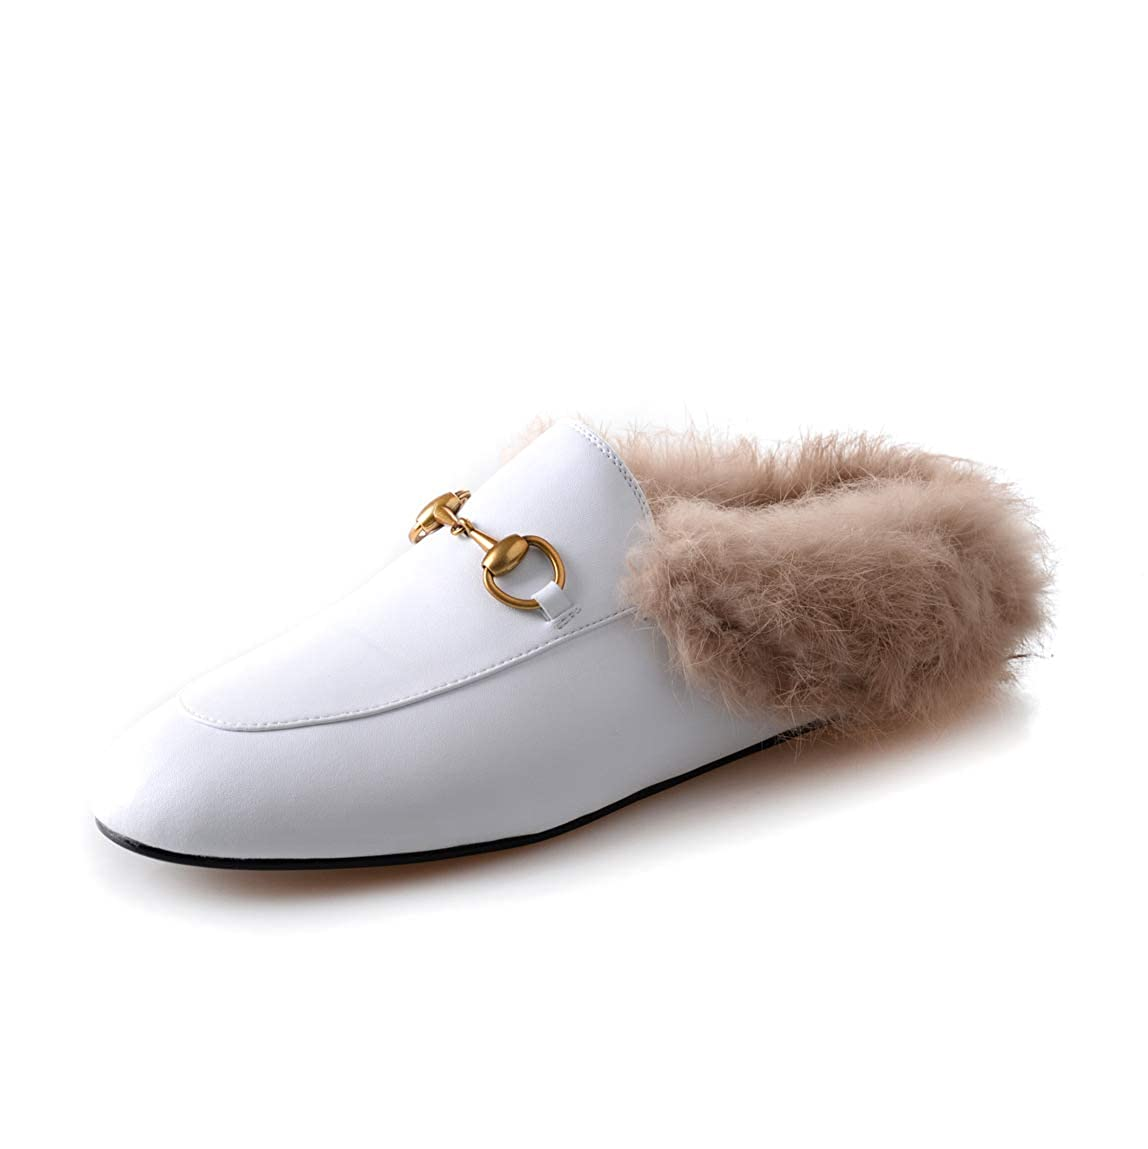 White HEETIST Backless Faux Fur Mules for Women, Round Toe Yellow Suede Flats Outdoor Slipper Flats shoes